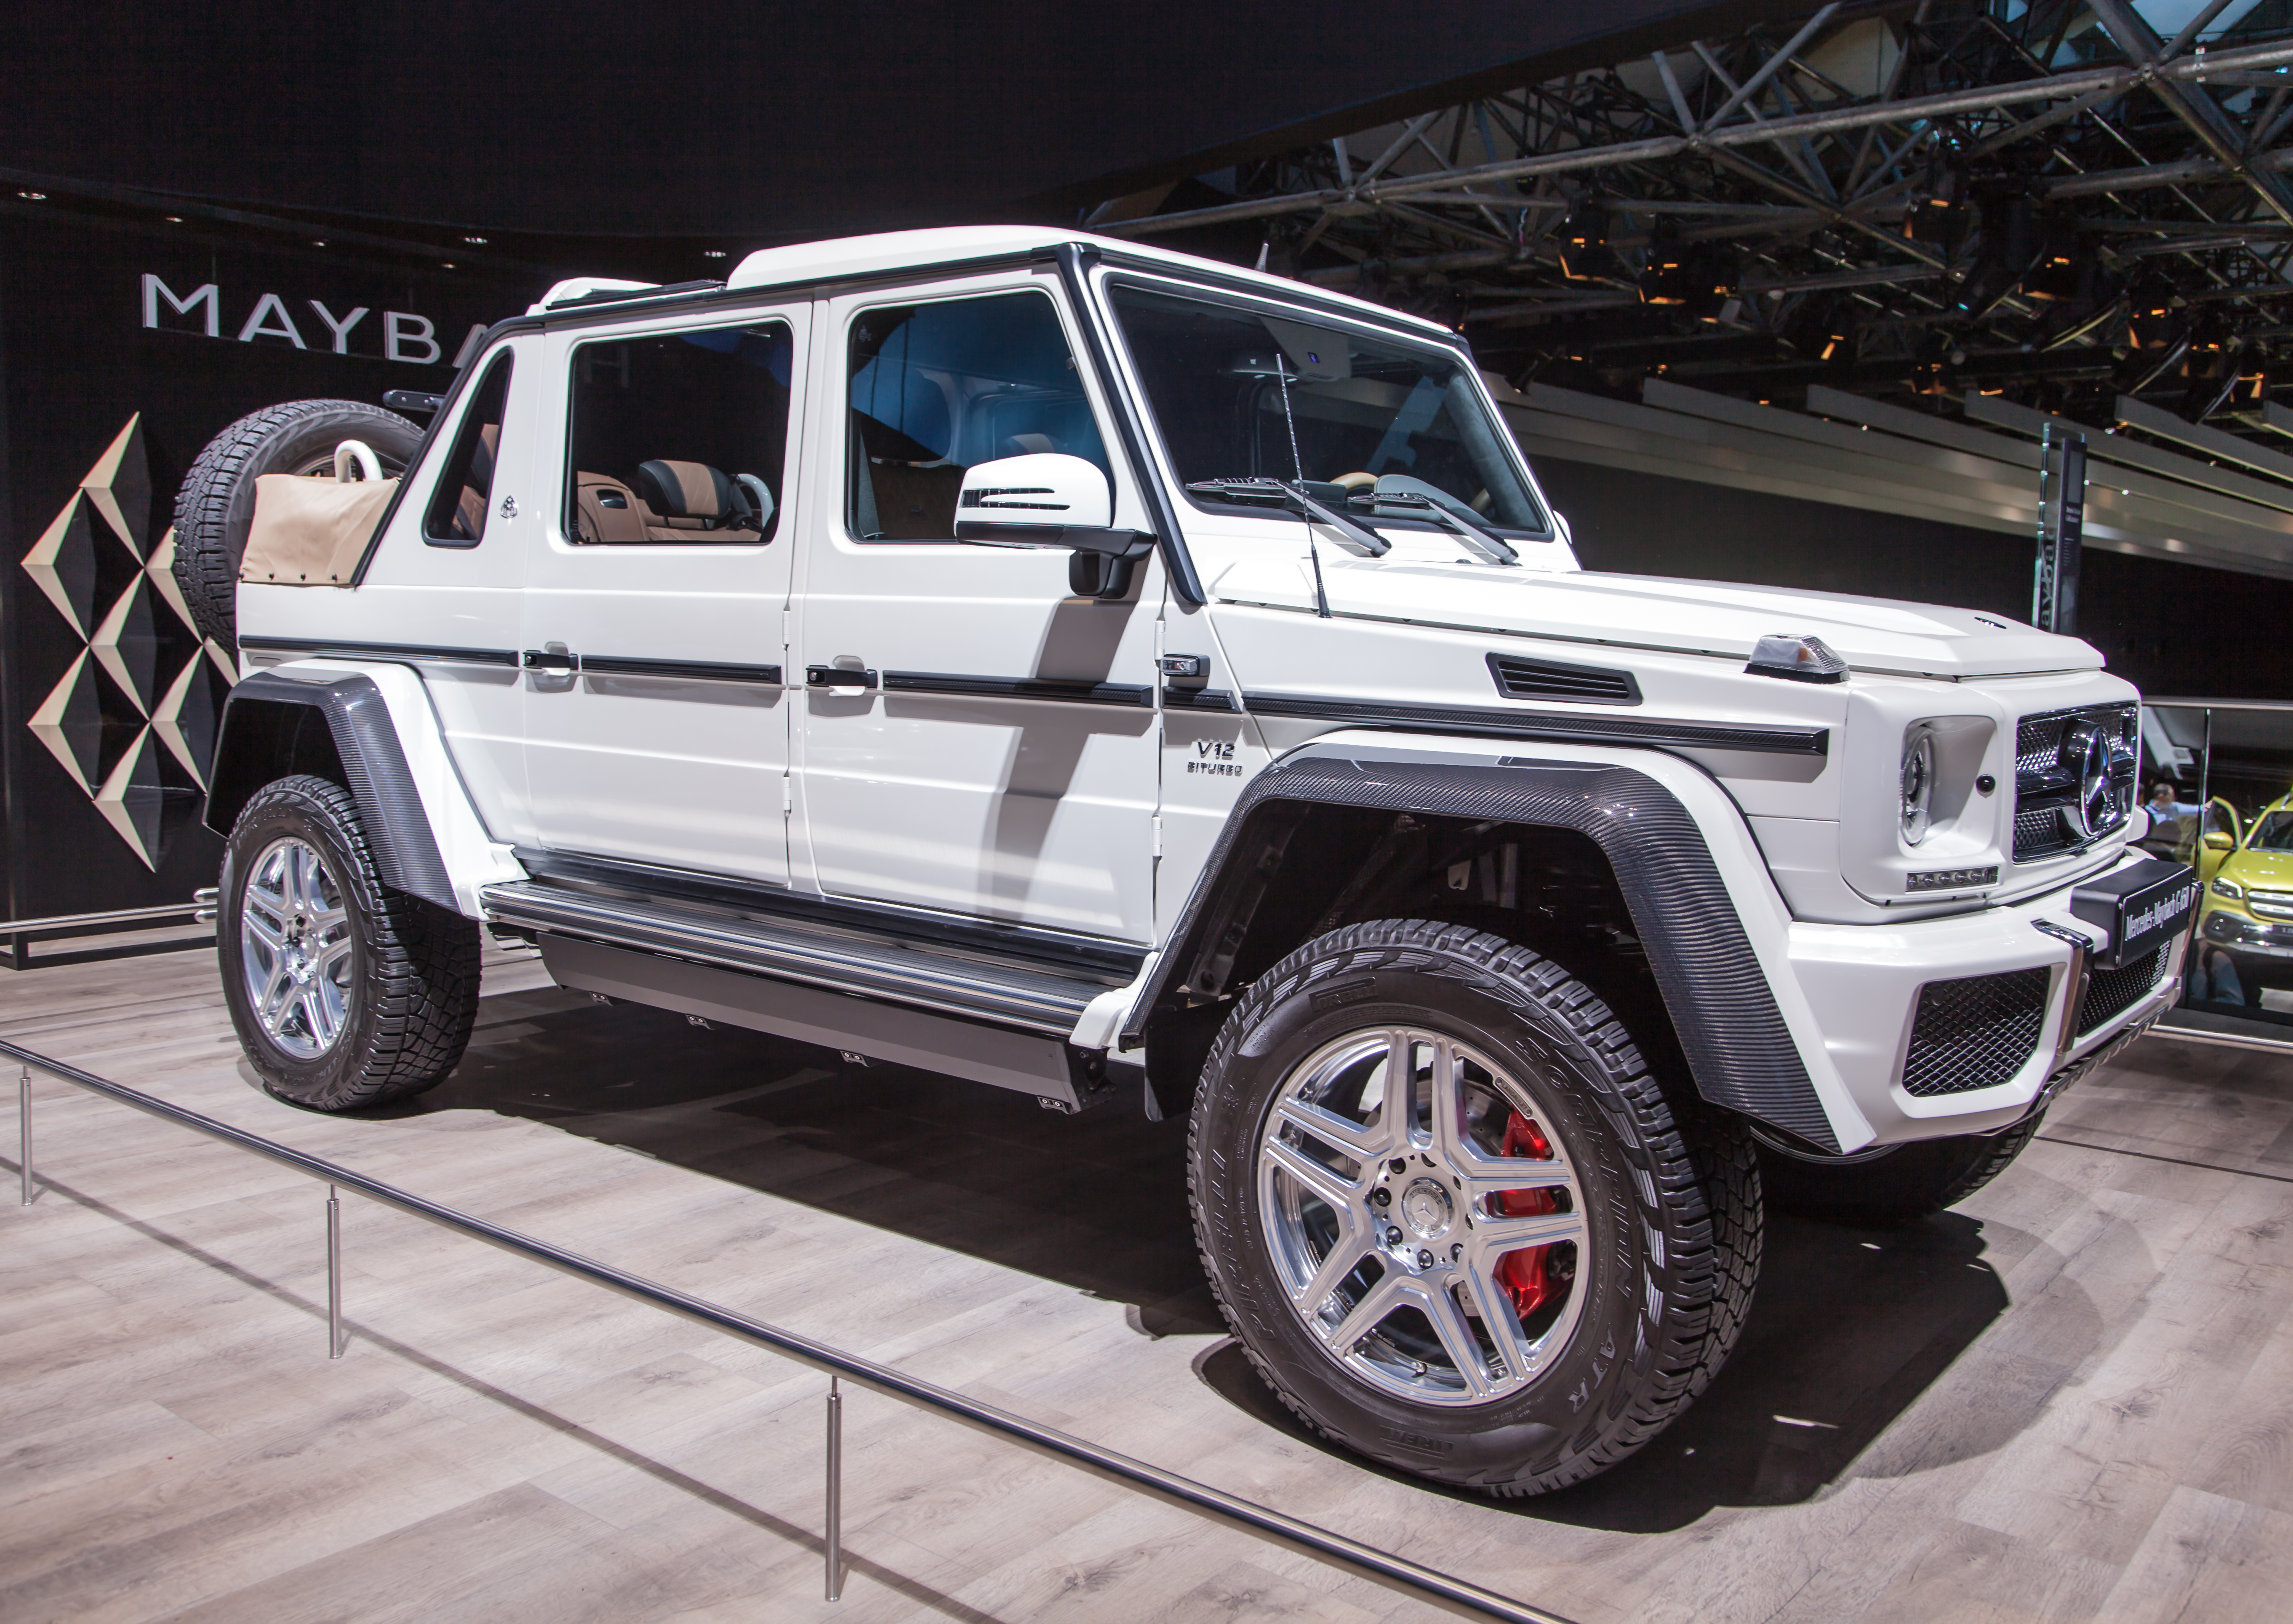 Mercedes Maybach G Class Price